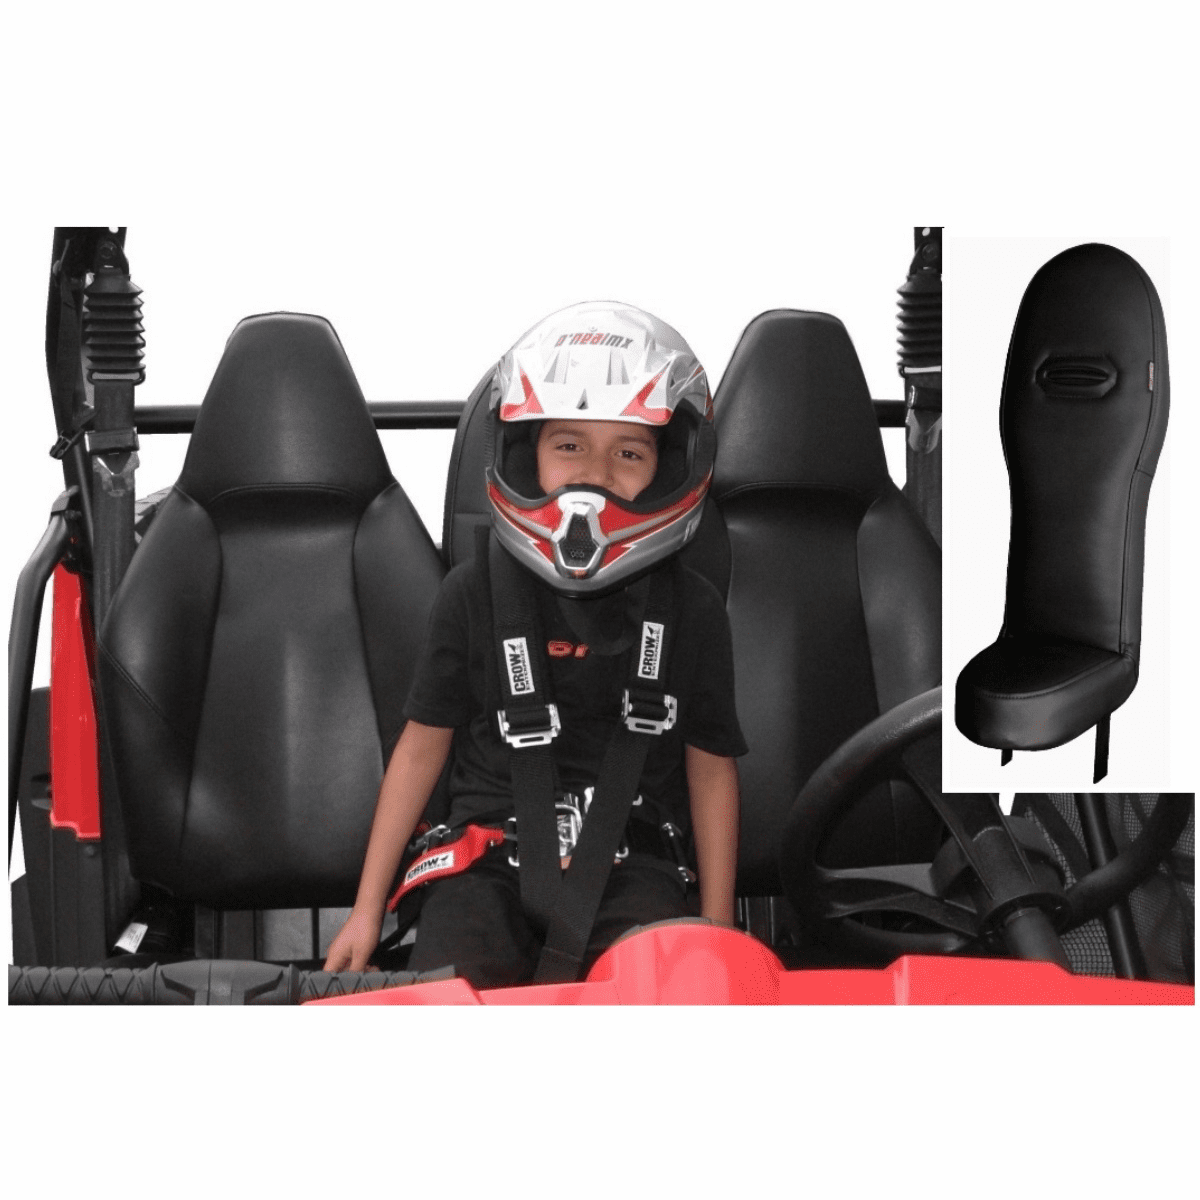 2008-2014 RZR Center Seat - All Black **SOLD OUT***